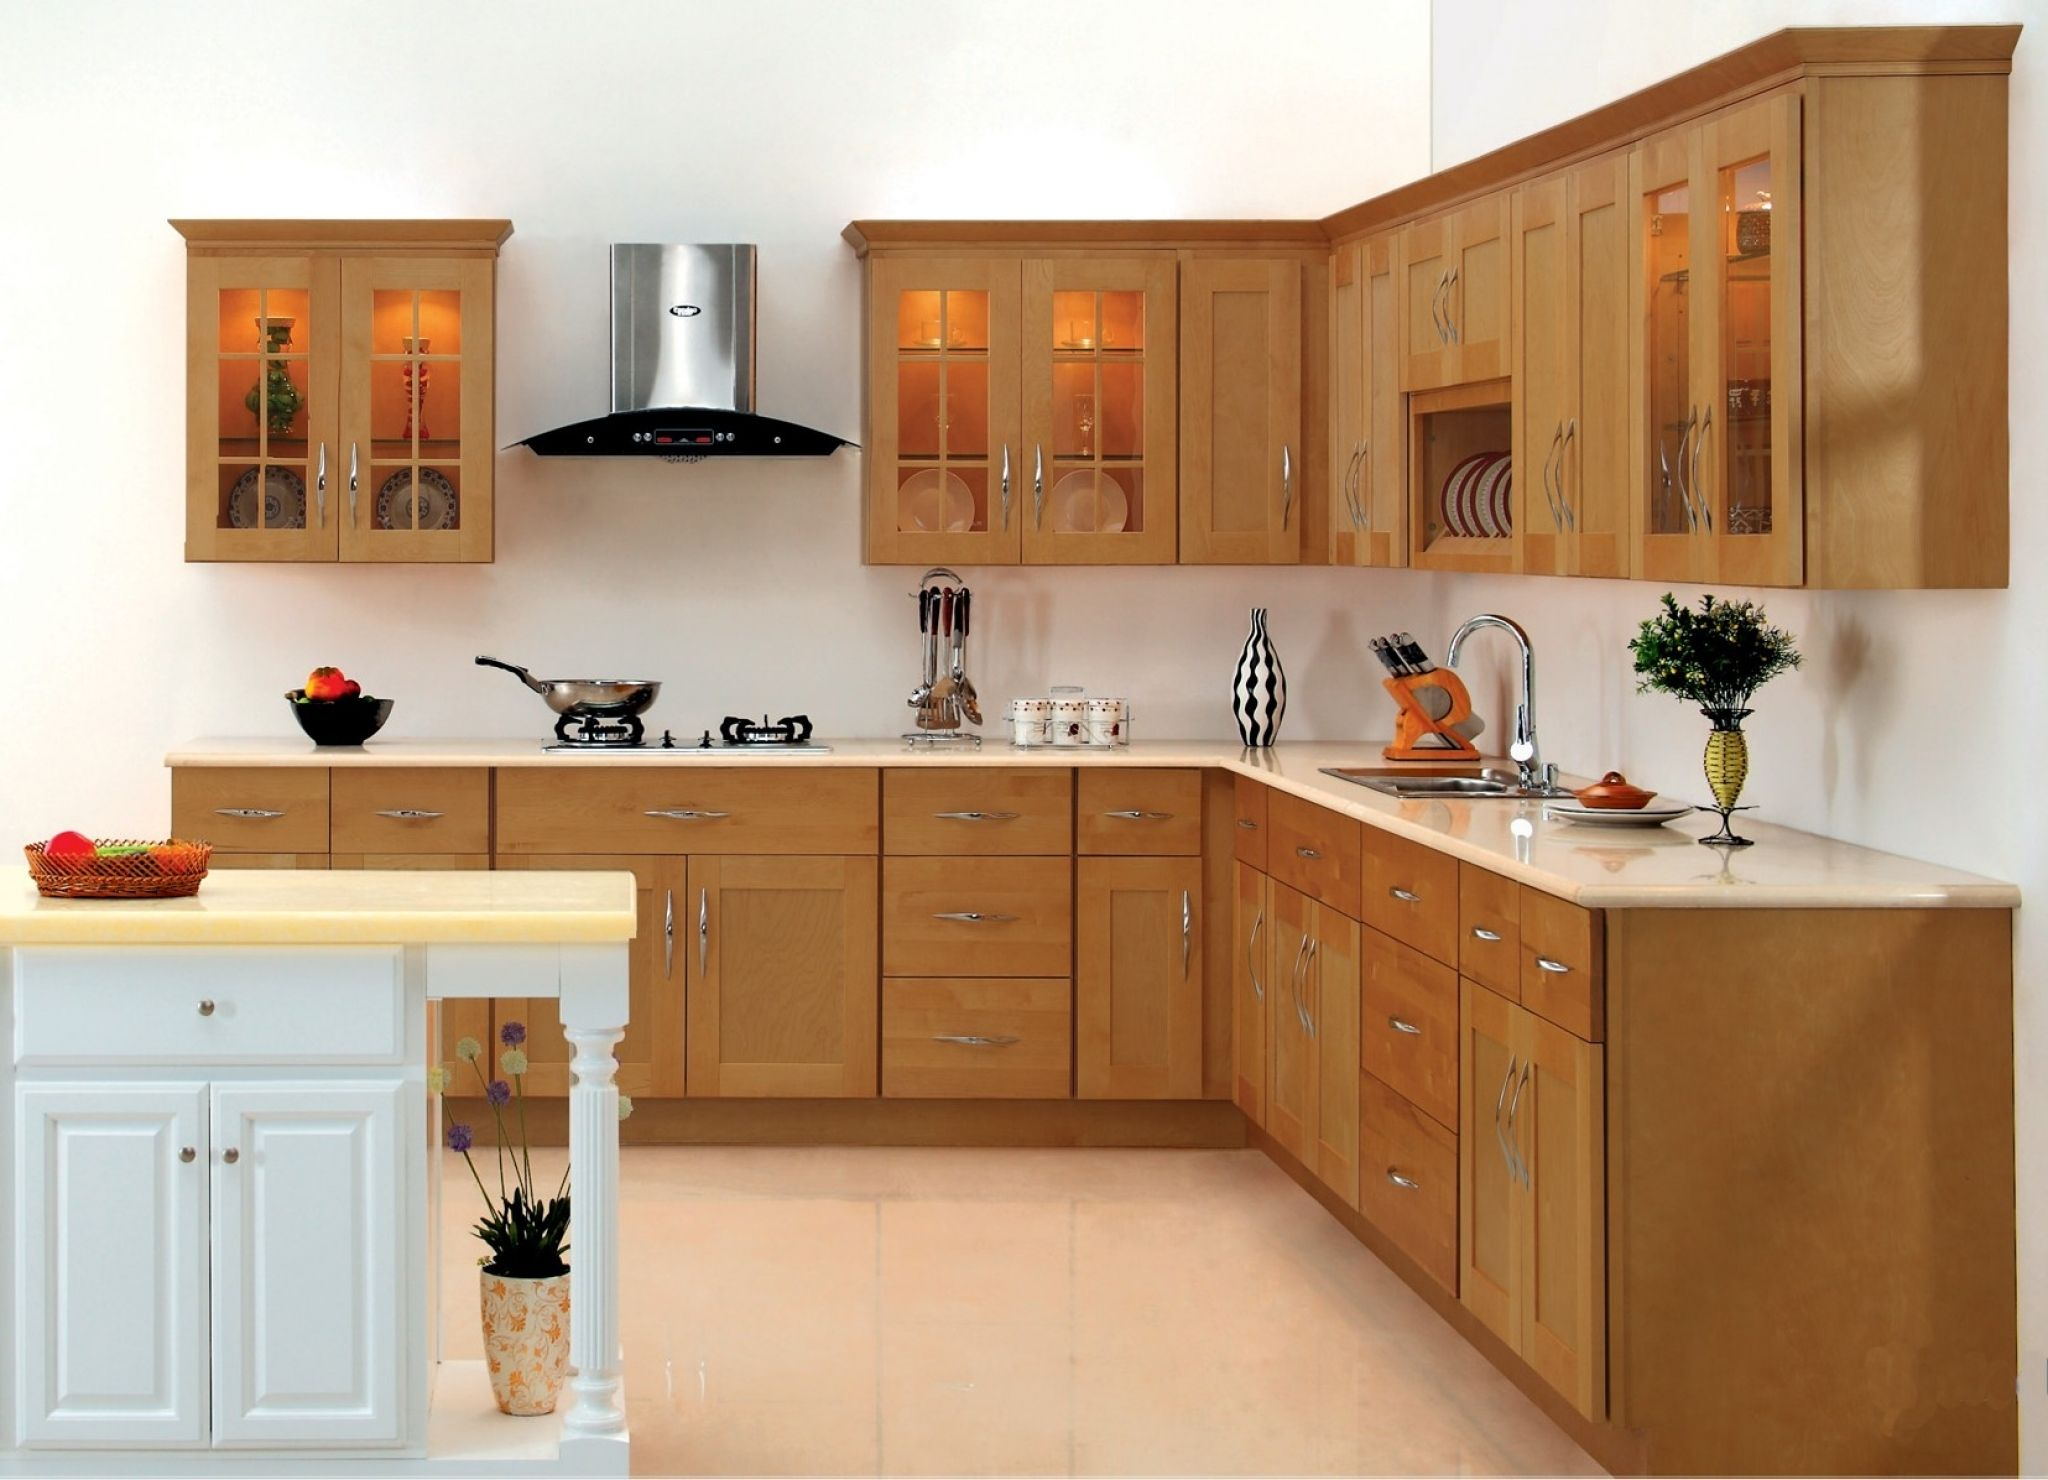 kitchen cabinet l shape - organizing ideas for kitchen Check more